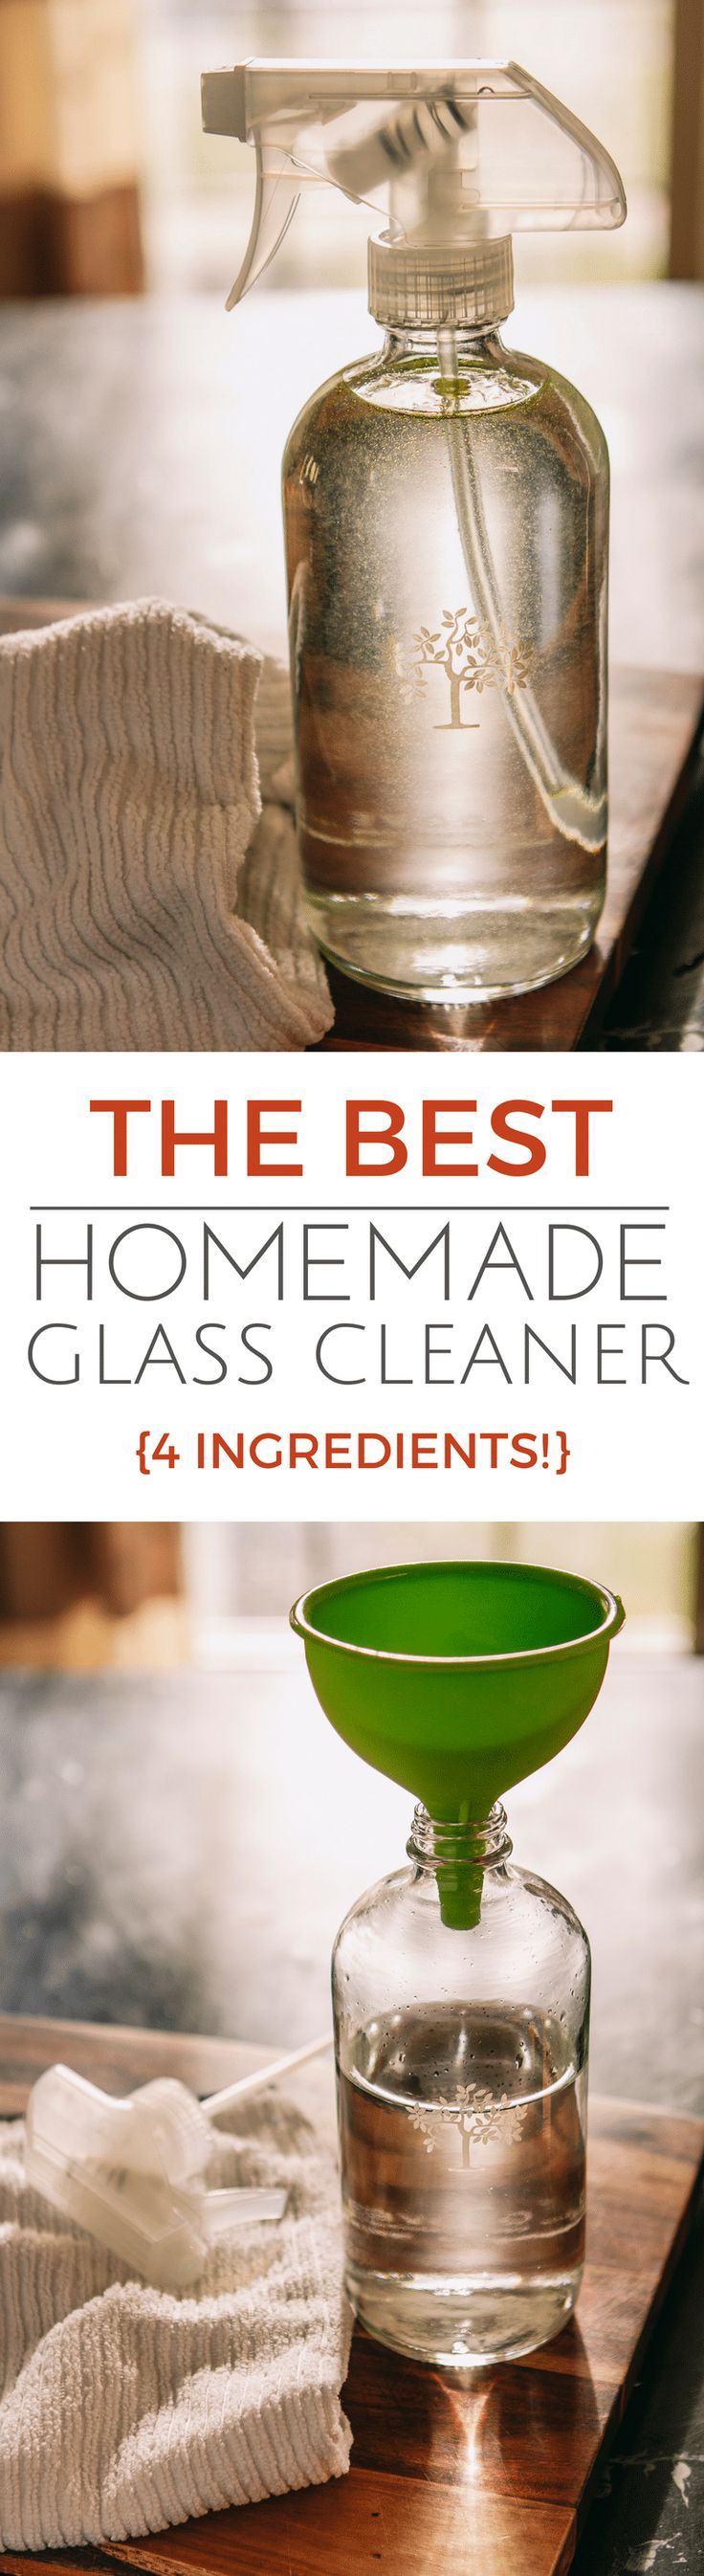 homemade glass cleaner | diy glass cleaner | glass cleaner recipe | cleaning ideas |  cleaning products | essential oil recipes | unsophisticook.com